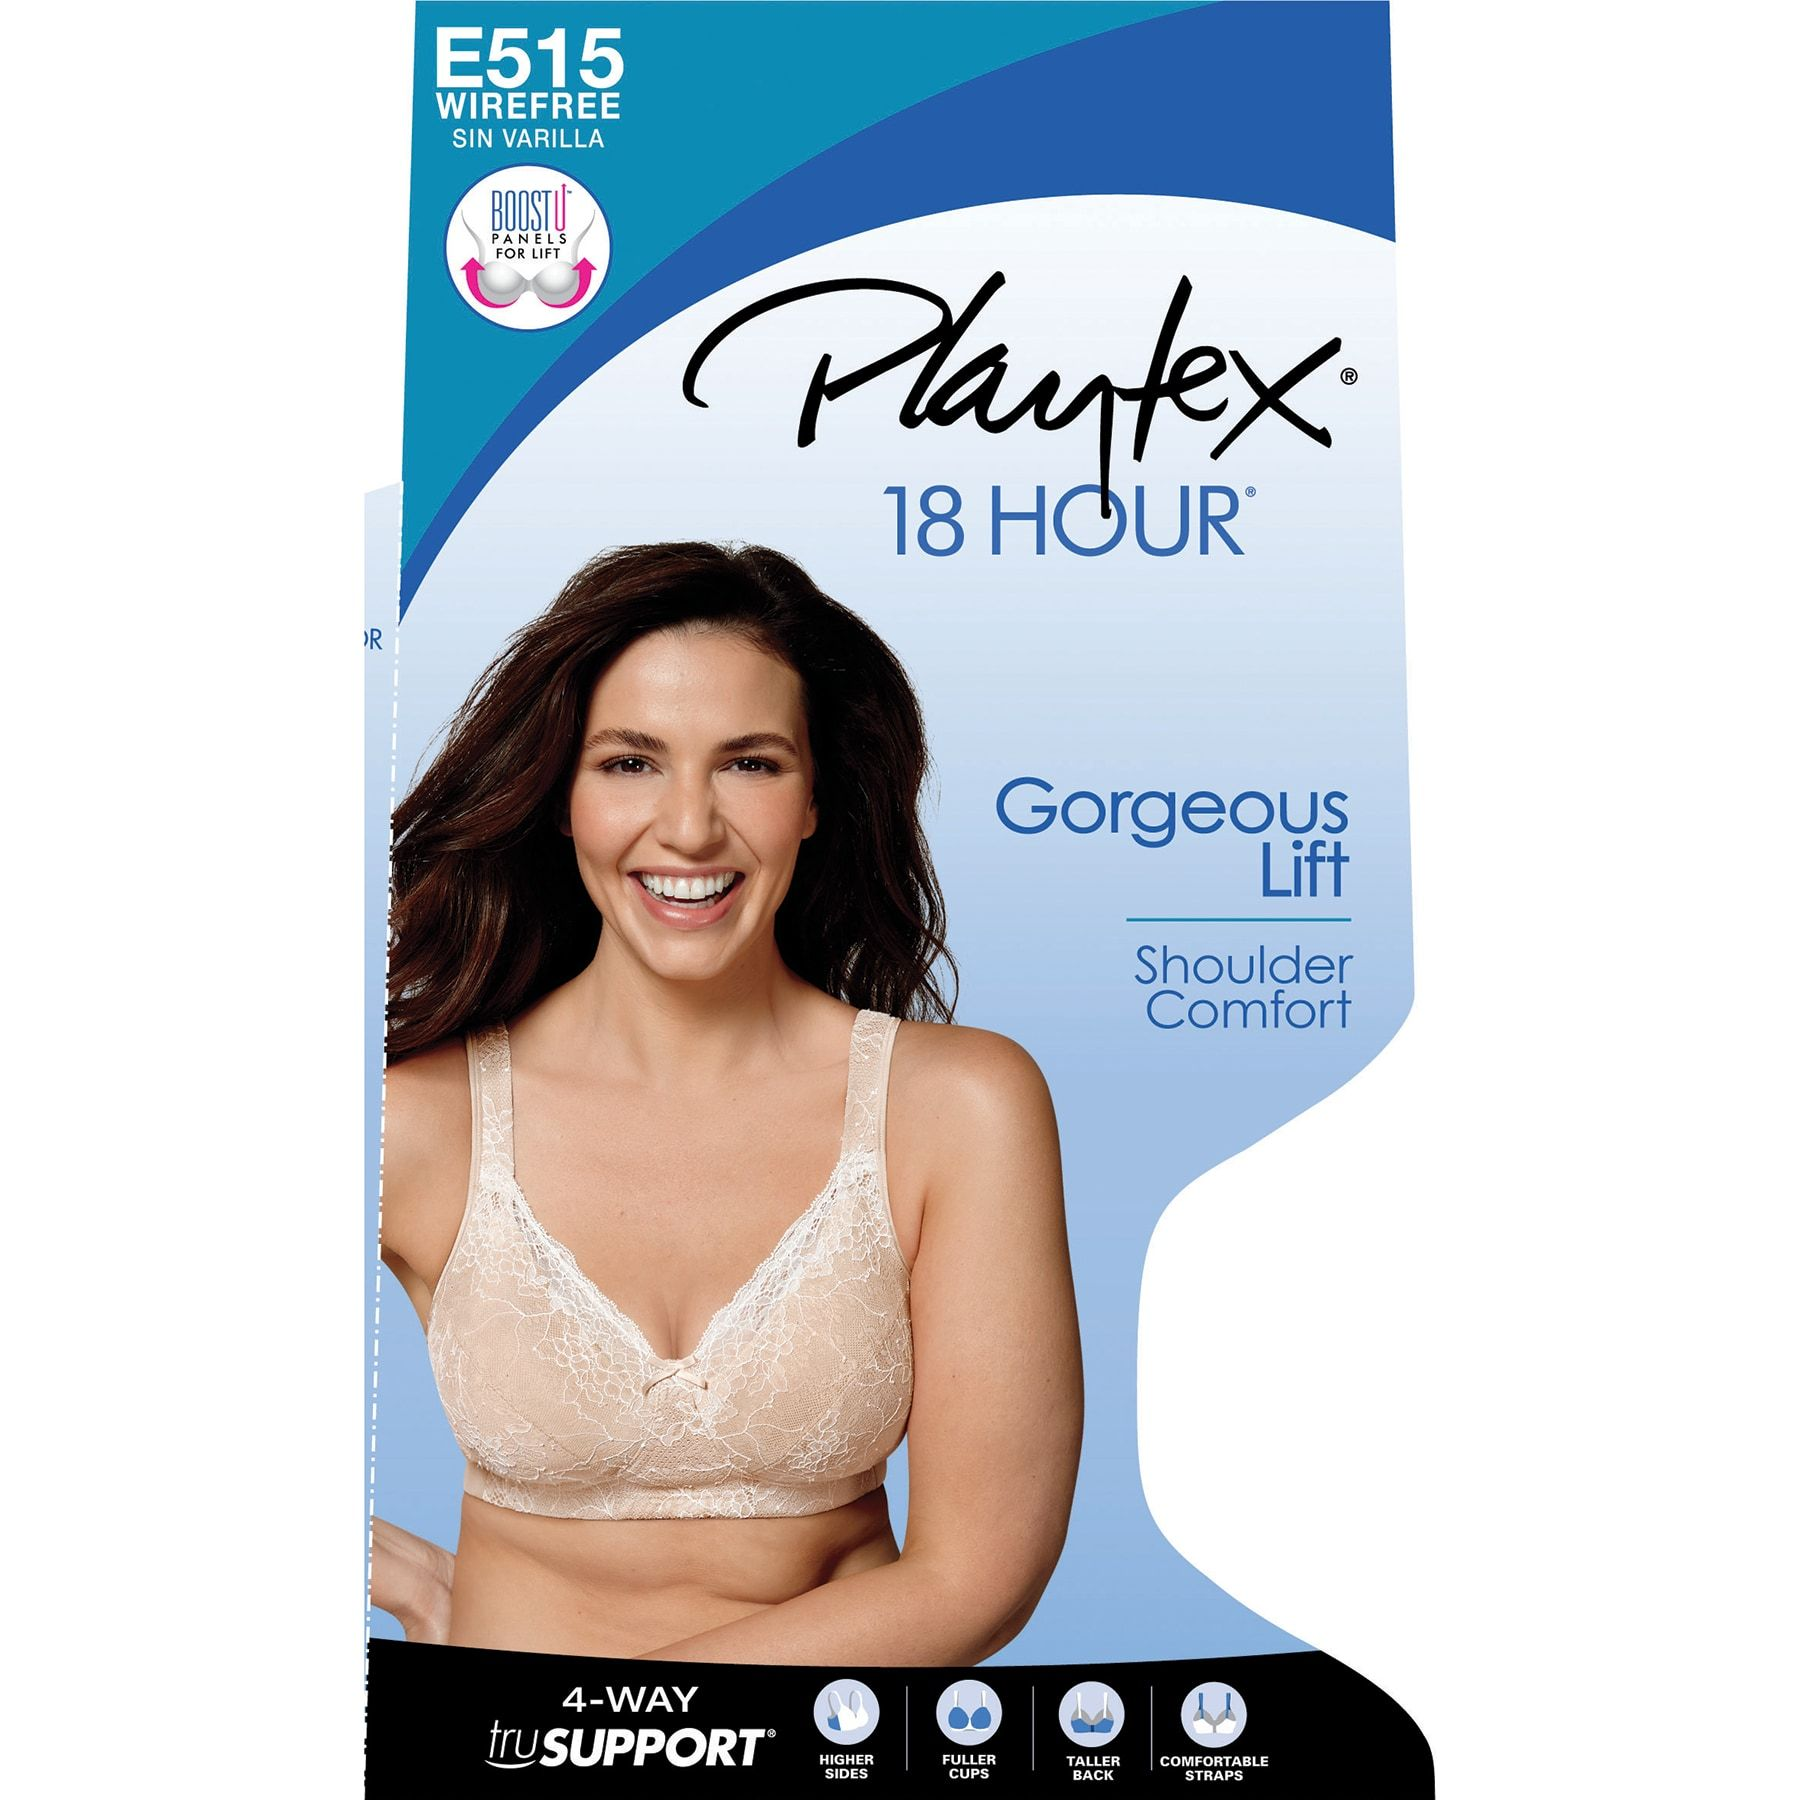 f29d8060dc Playtex 18 Hour Bra  Perfect Lift Lace Wire-Free Full-Figure Bra E515